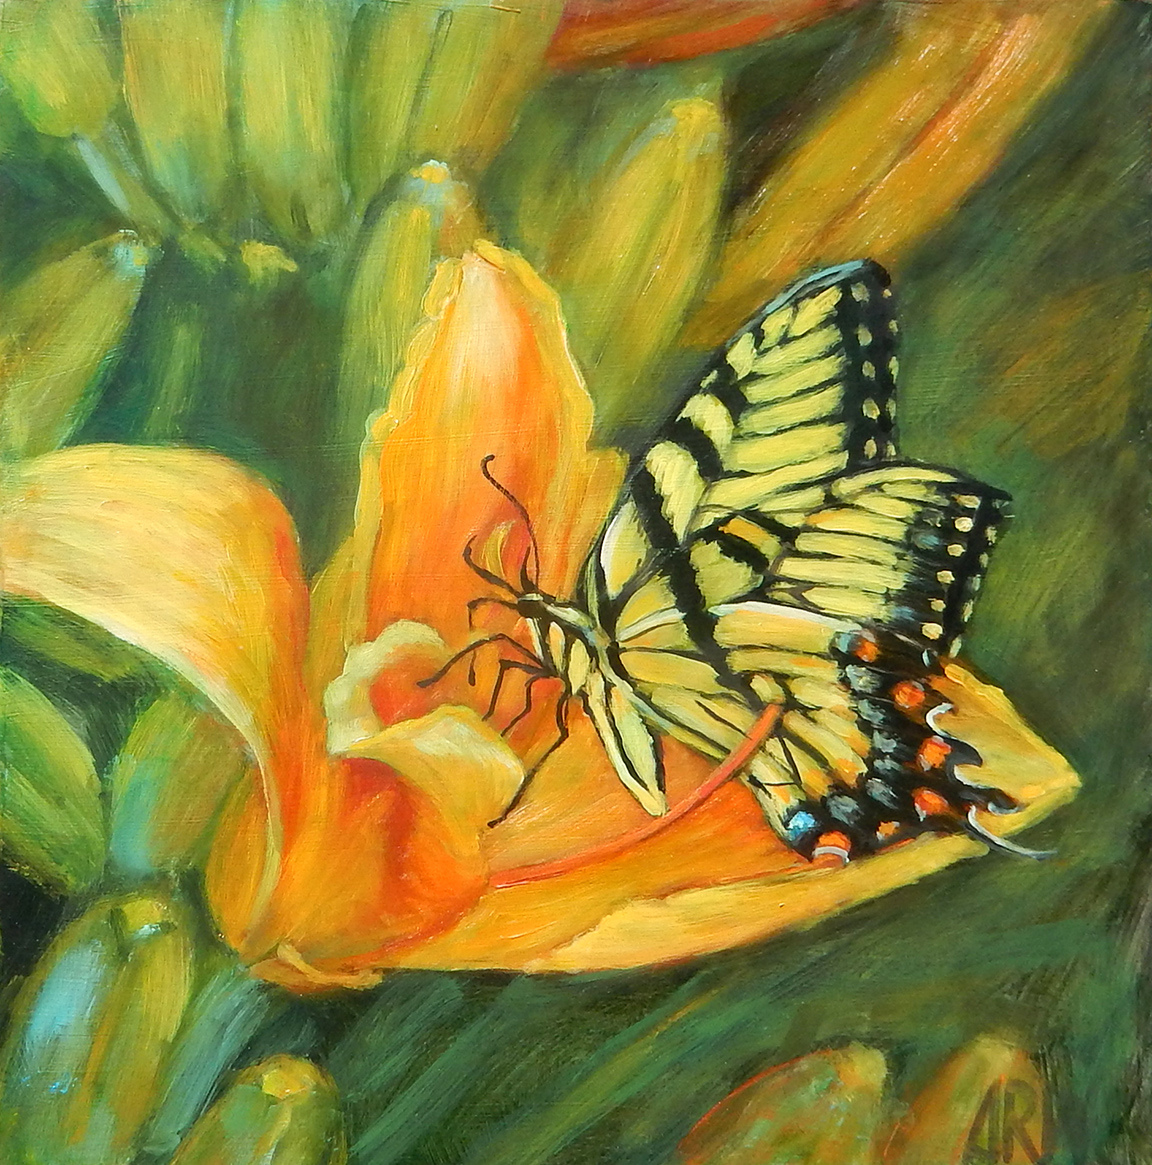 2020 Monarch Butterfly 10x10 o/p